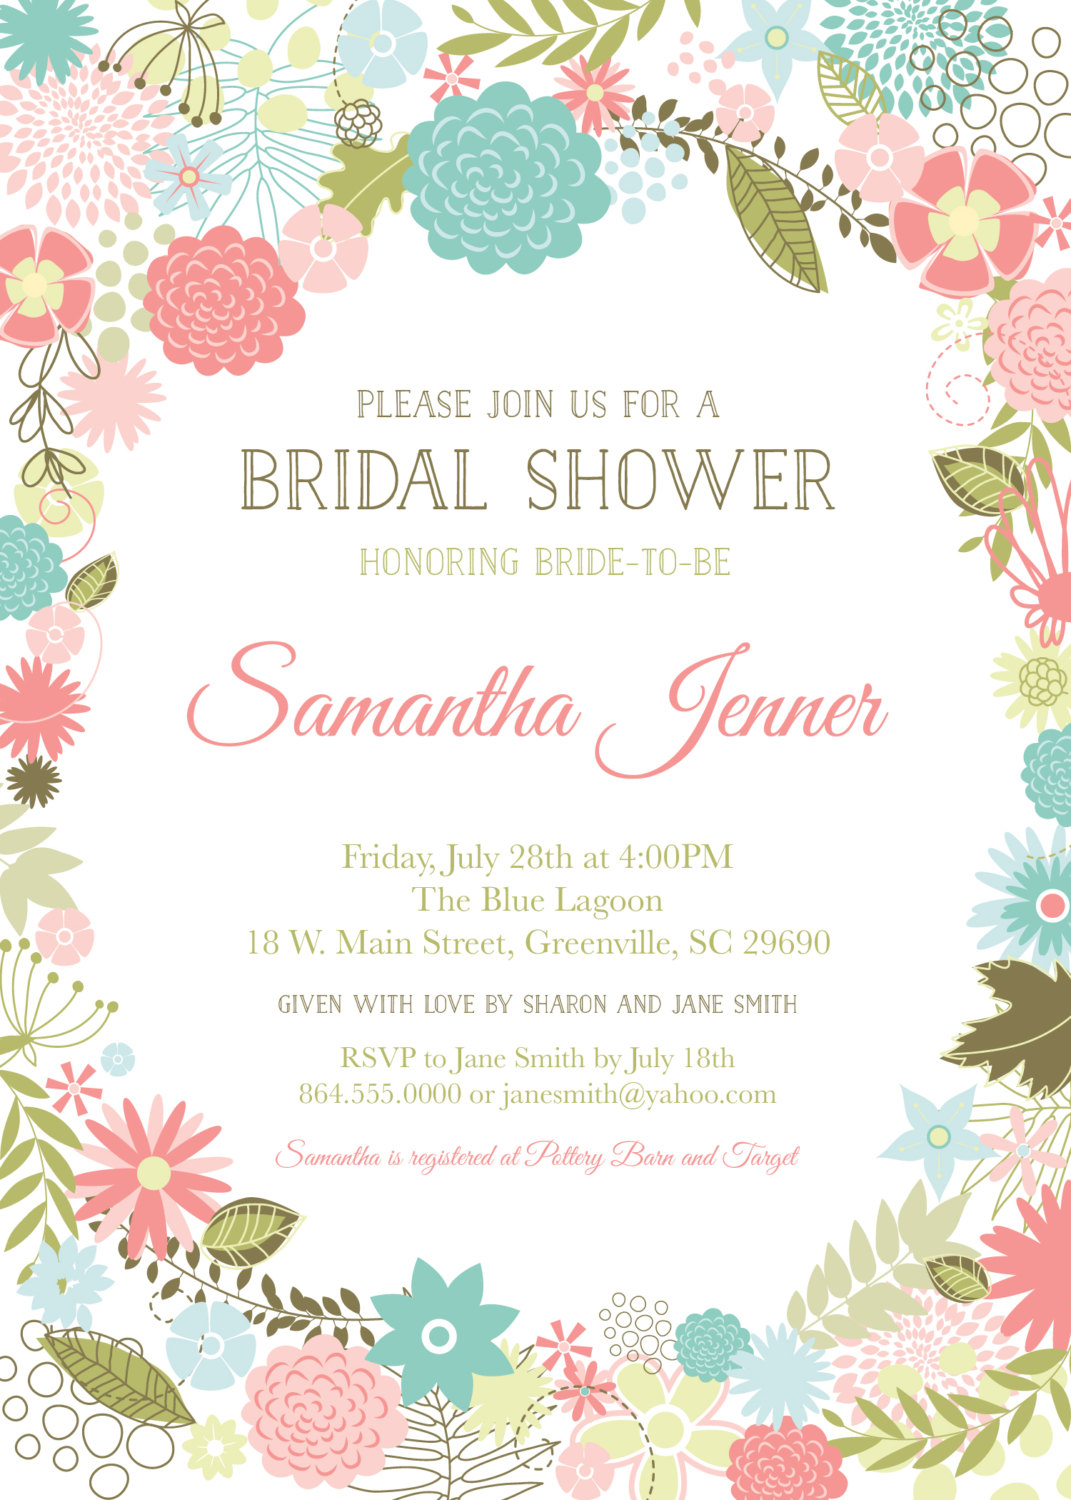 The Yellow Wallpaper Quotes About Gender Retro Modern Flowers Bridal Baby Shower Invitations